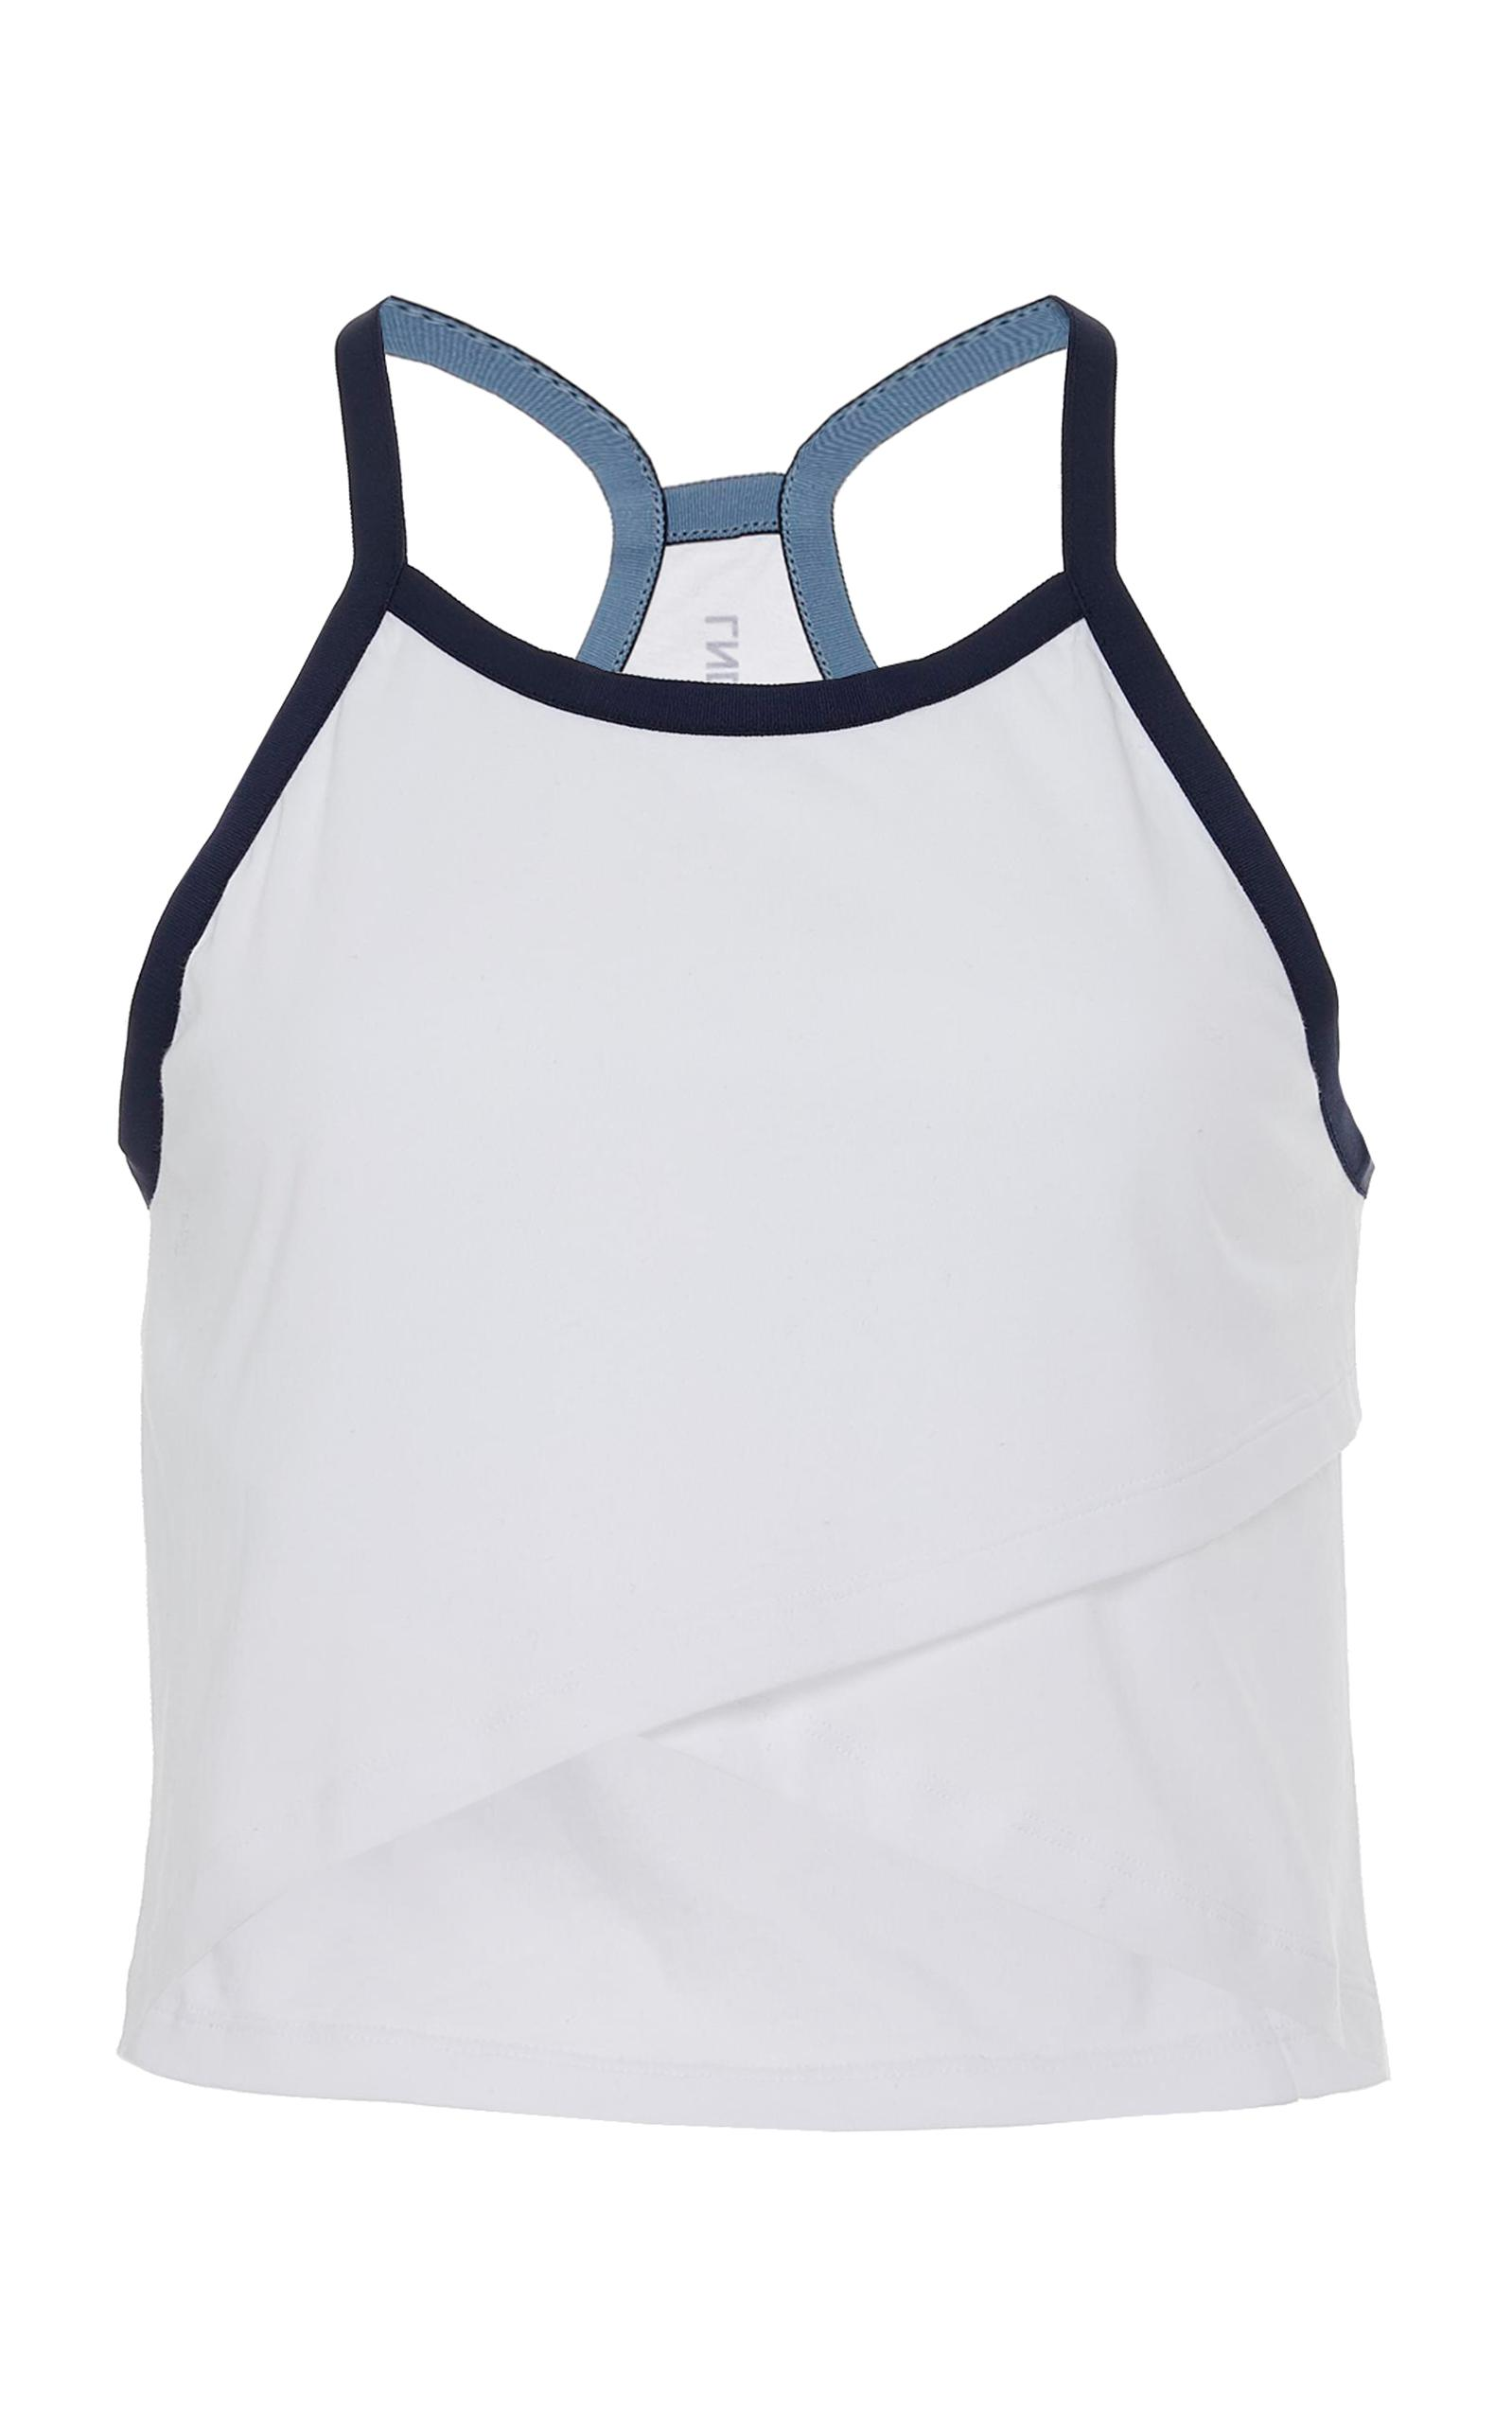 Cheer Cropped Organic Cotton-jersey Tank - White LNDR Sale Best Place Outlet Prices Free Shipping Outlet Locations Big Discount Online yd7XIV20